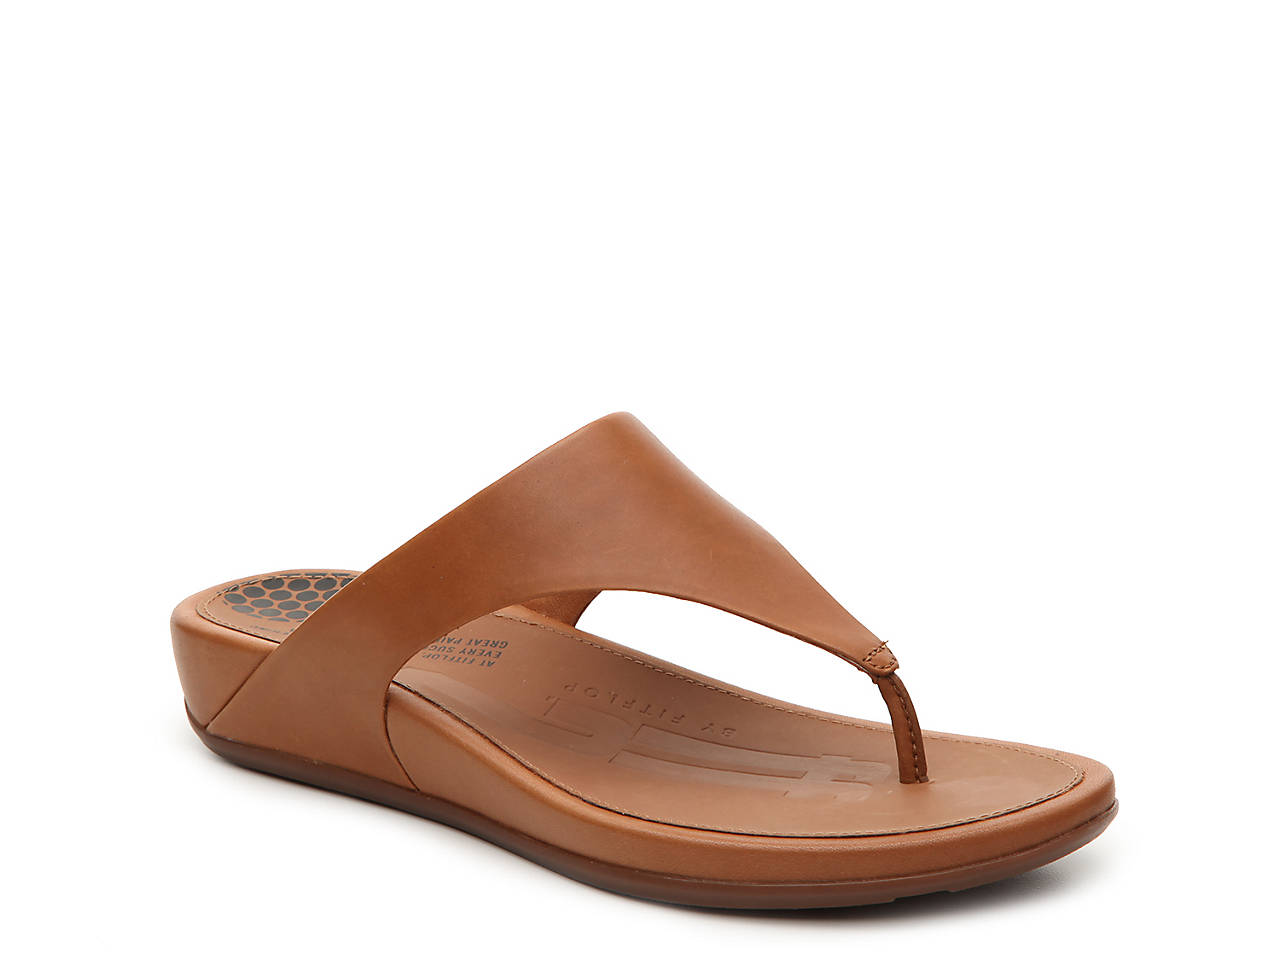 f6805f431683 FitFlop Banda Wedge Sandal Women s Shoes